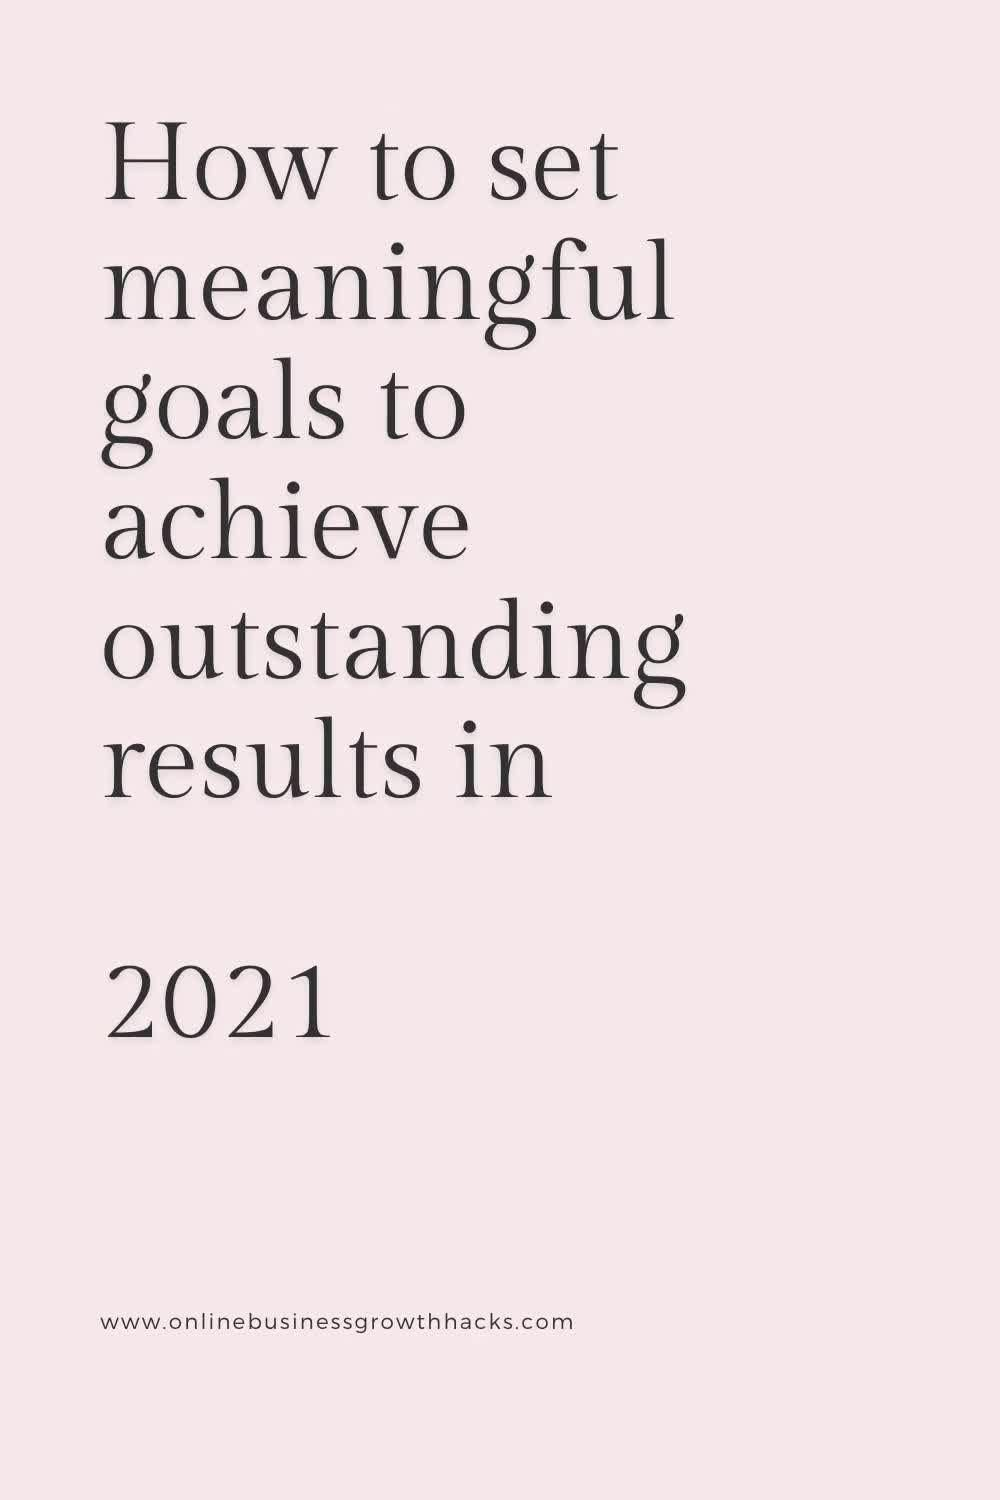 How to set meaningful goals to achieve outstanding